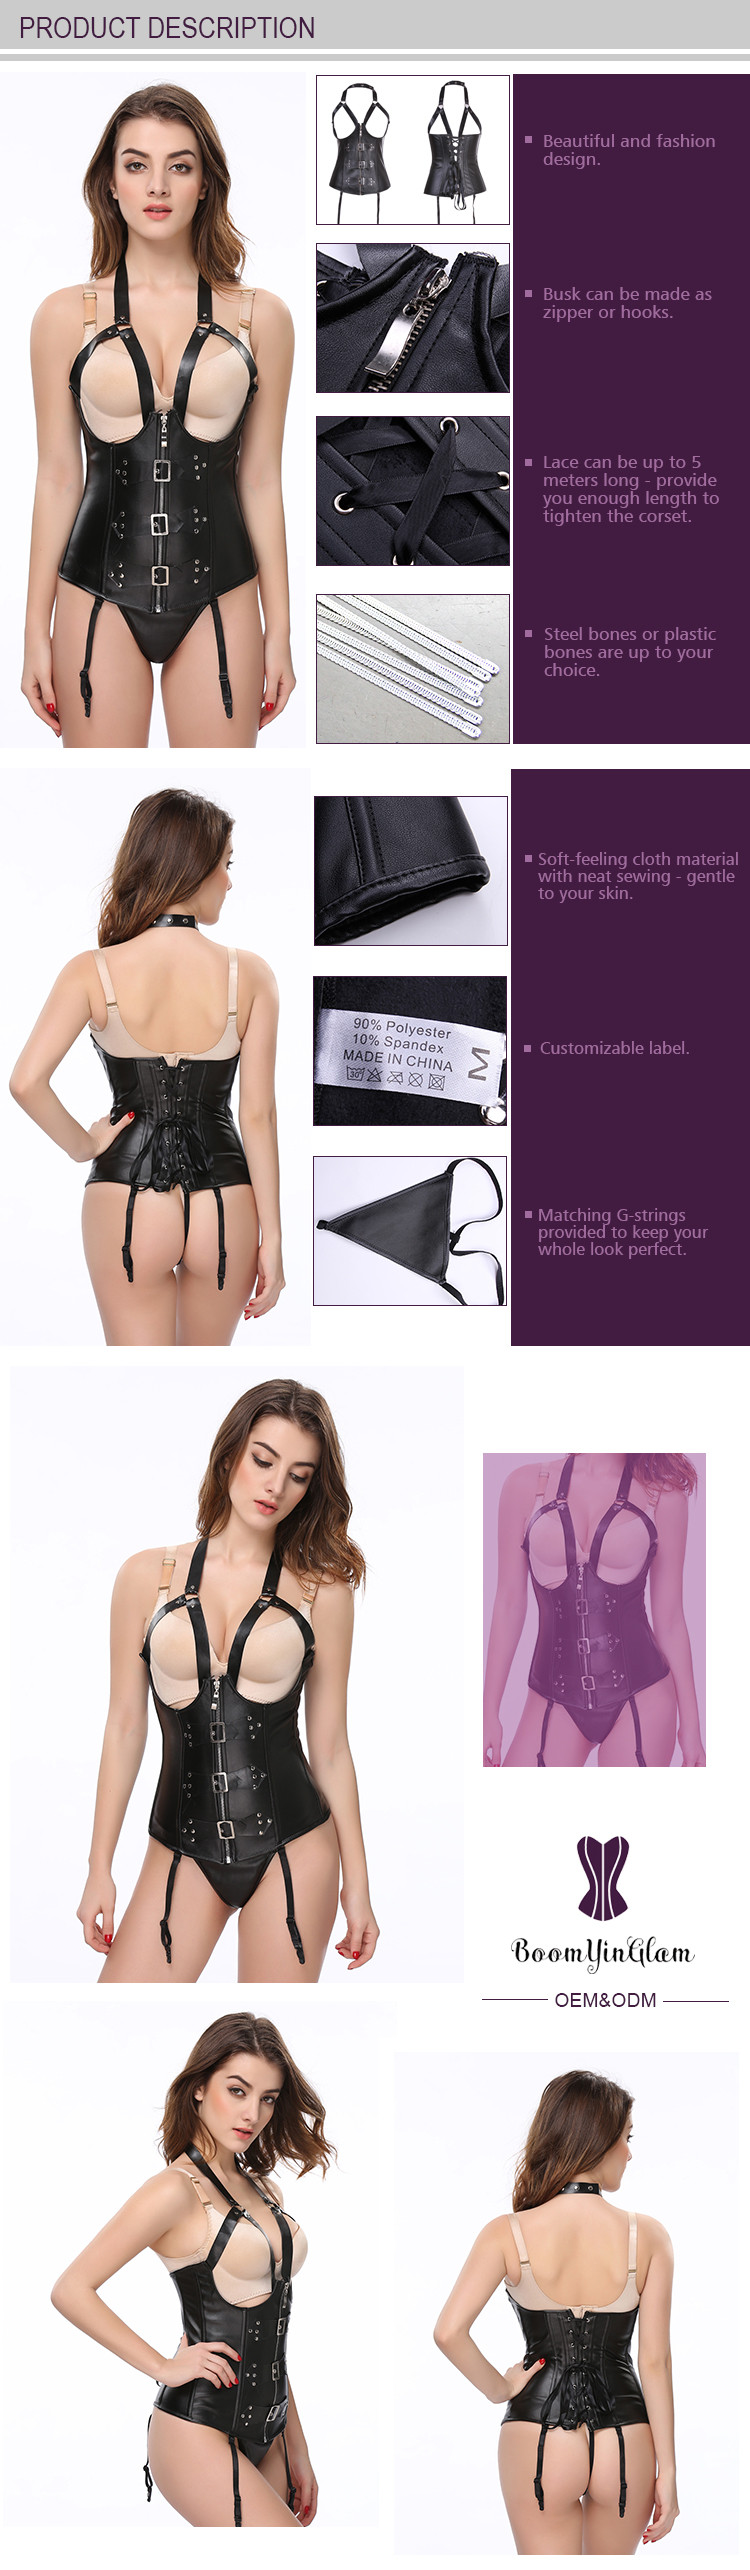 8a7305fef4 Sexy nightwear slimming costumes halter faux leather girdle shapewear  cupless corset